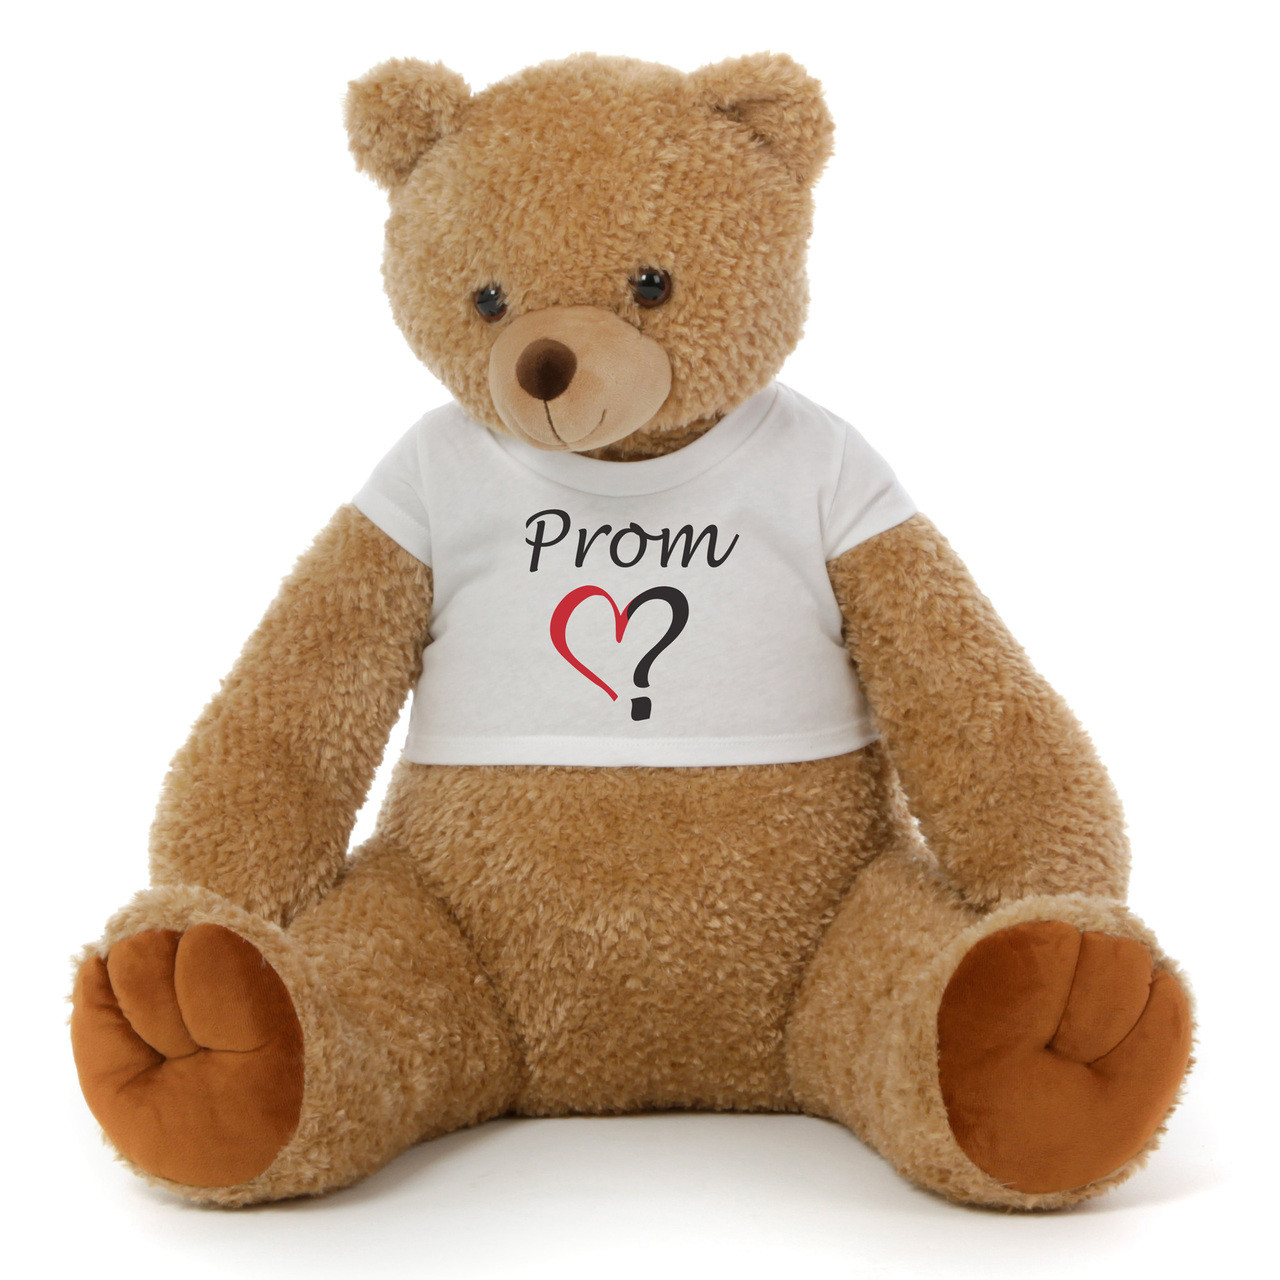 2½ ft Honey Tubs adorable amber brown Prom Teddy Bear (Prom? - Single Heart)